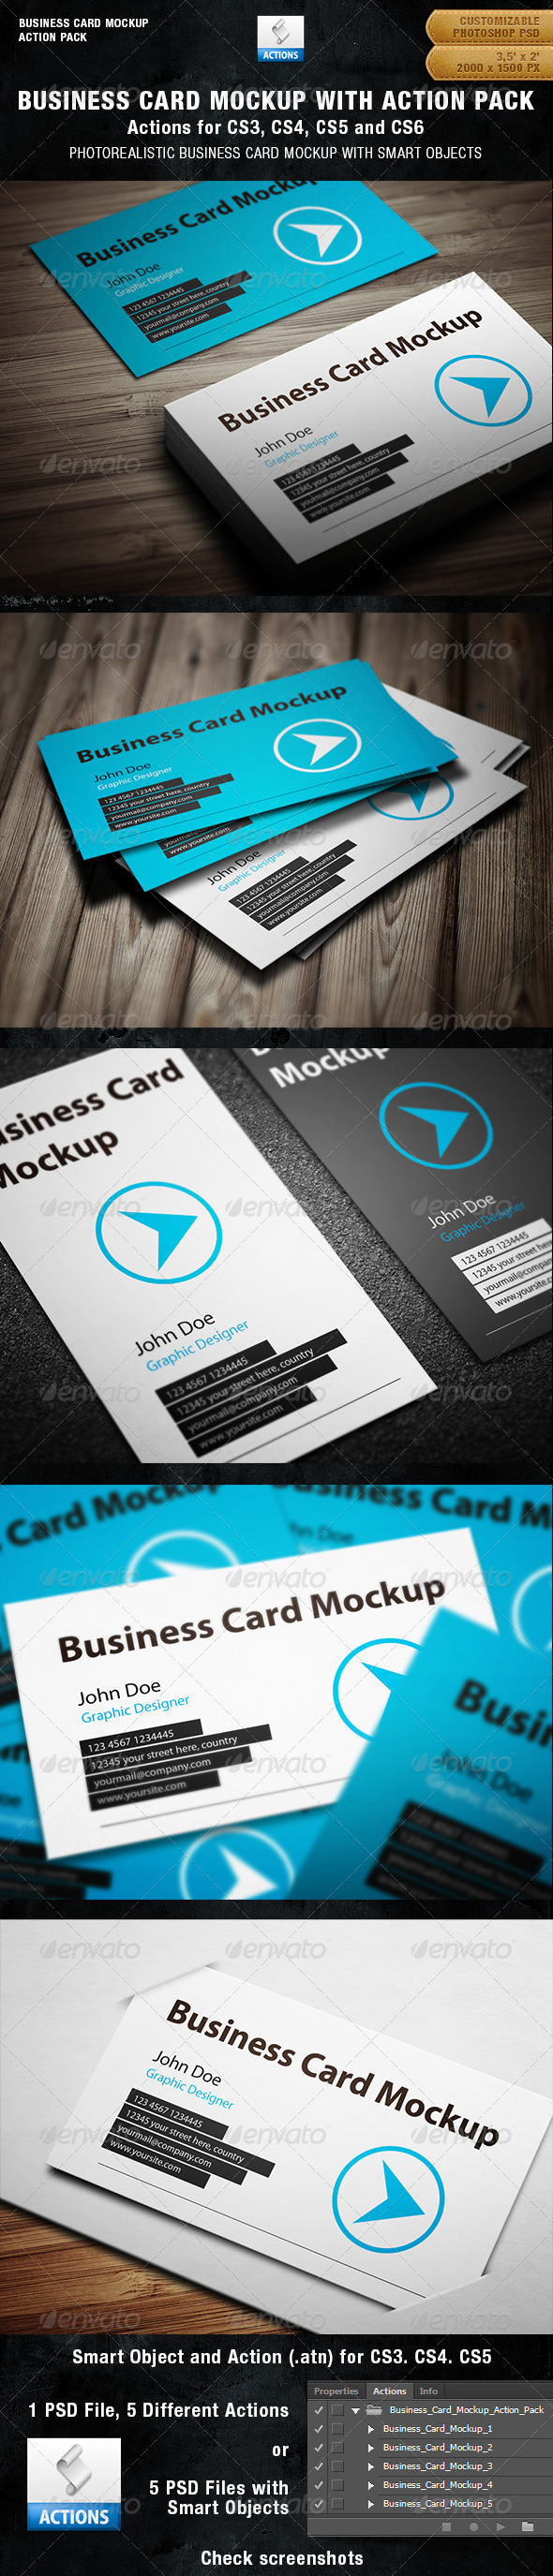 Business card mockup with actions pack by bluemonkeylab graphicriver business card mockup with actions pack reheart Gallery